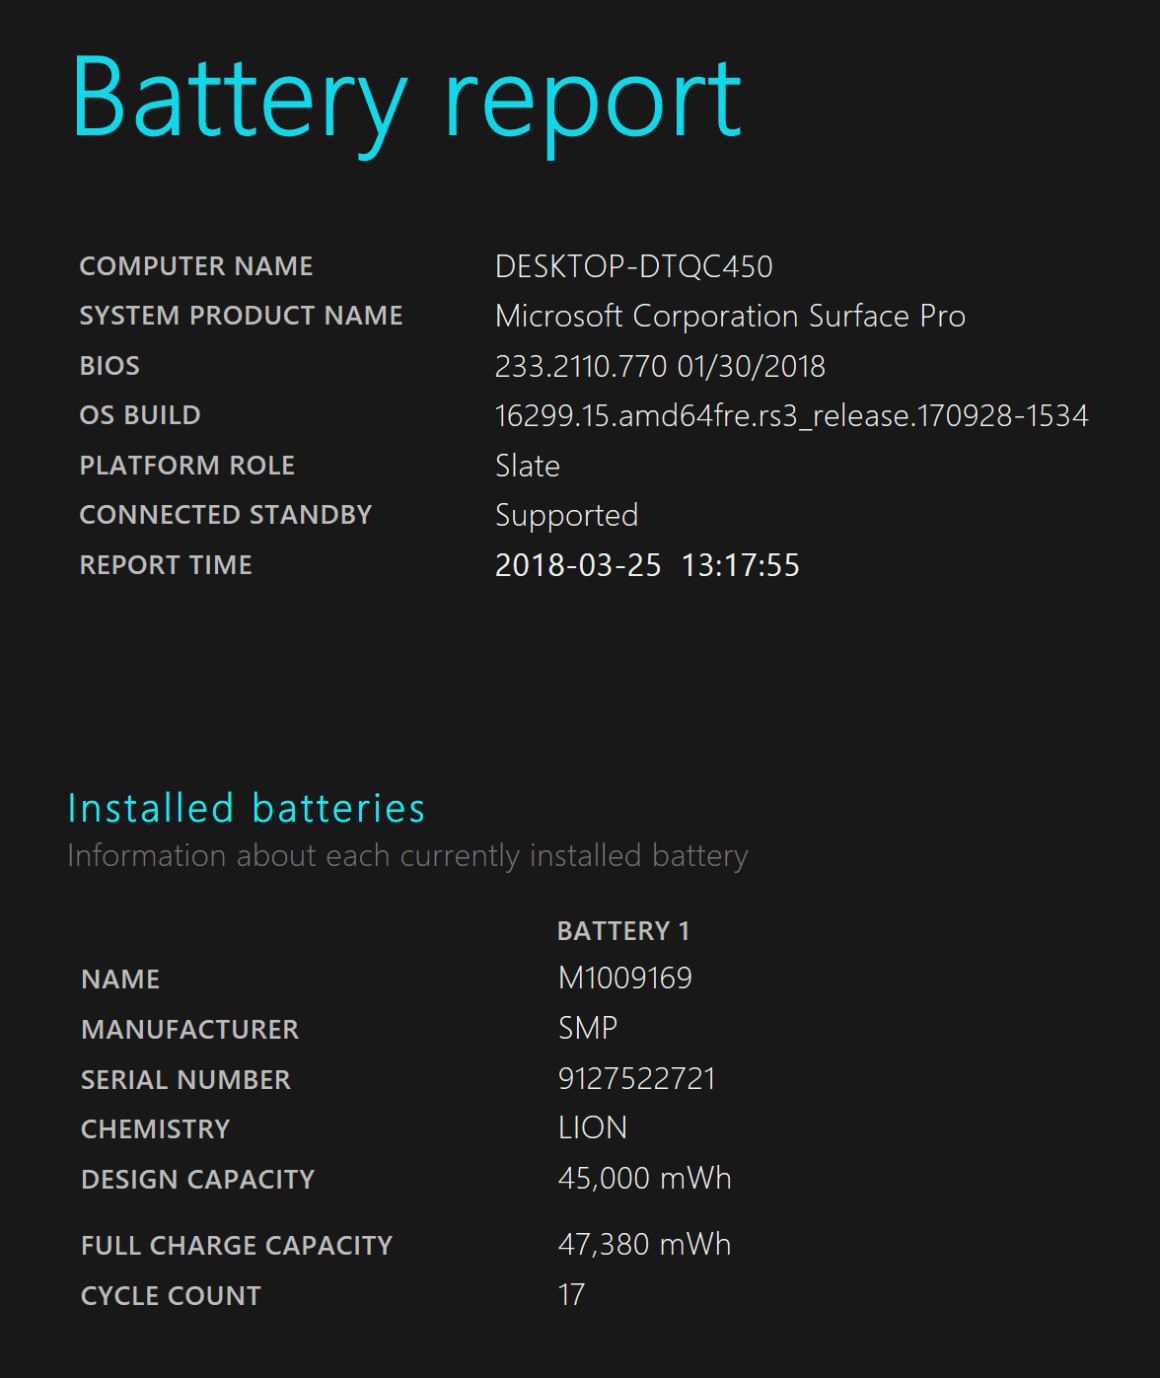 Battery Report readout - Adelaidetechguy